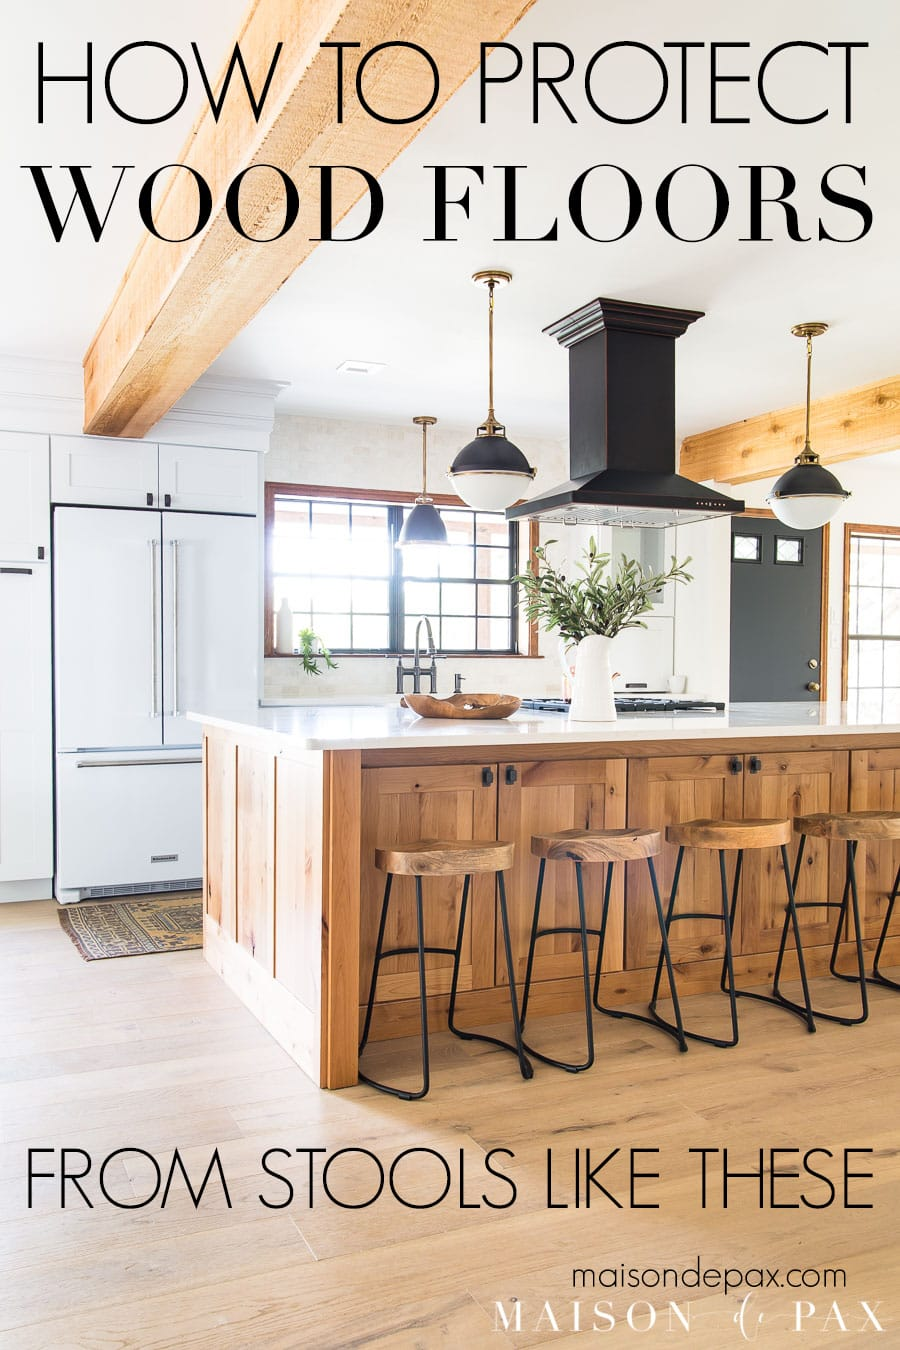 kitchen island with metal leg barstools and text overlay: how to protect wood floors from stools like these | Maison de Pax